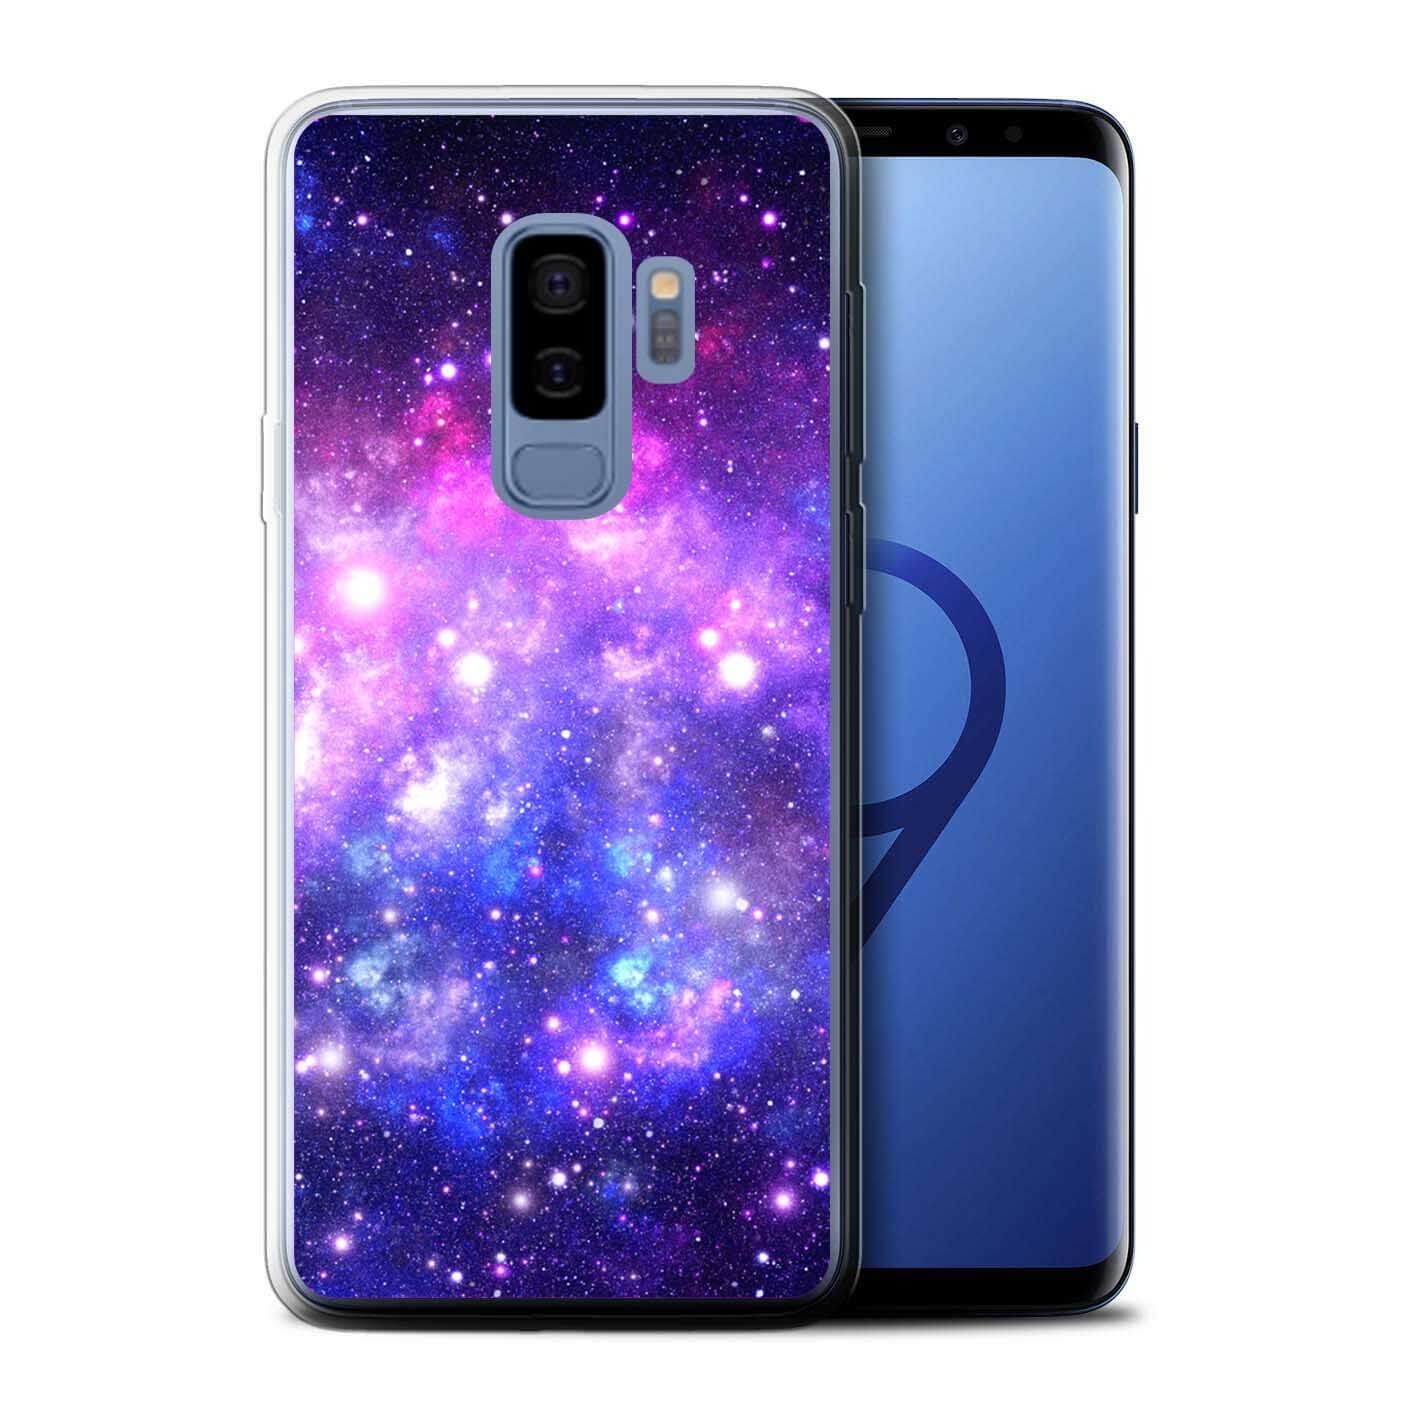 MY ART kryt Samsung Galaxy S9 Plus GALAXY (015)